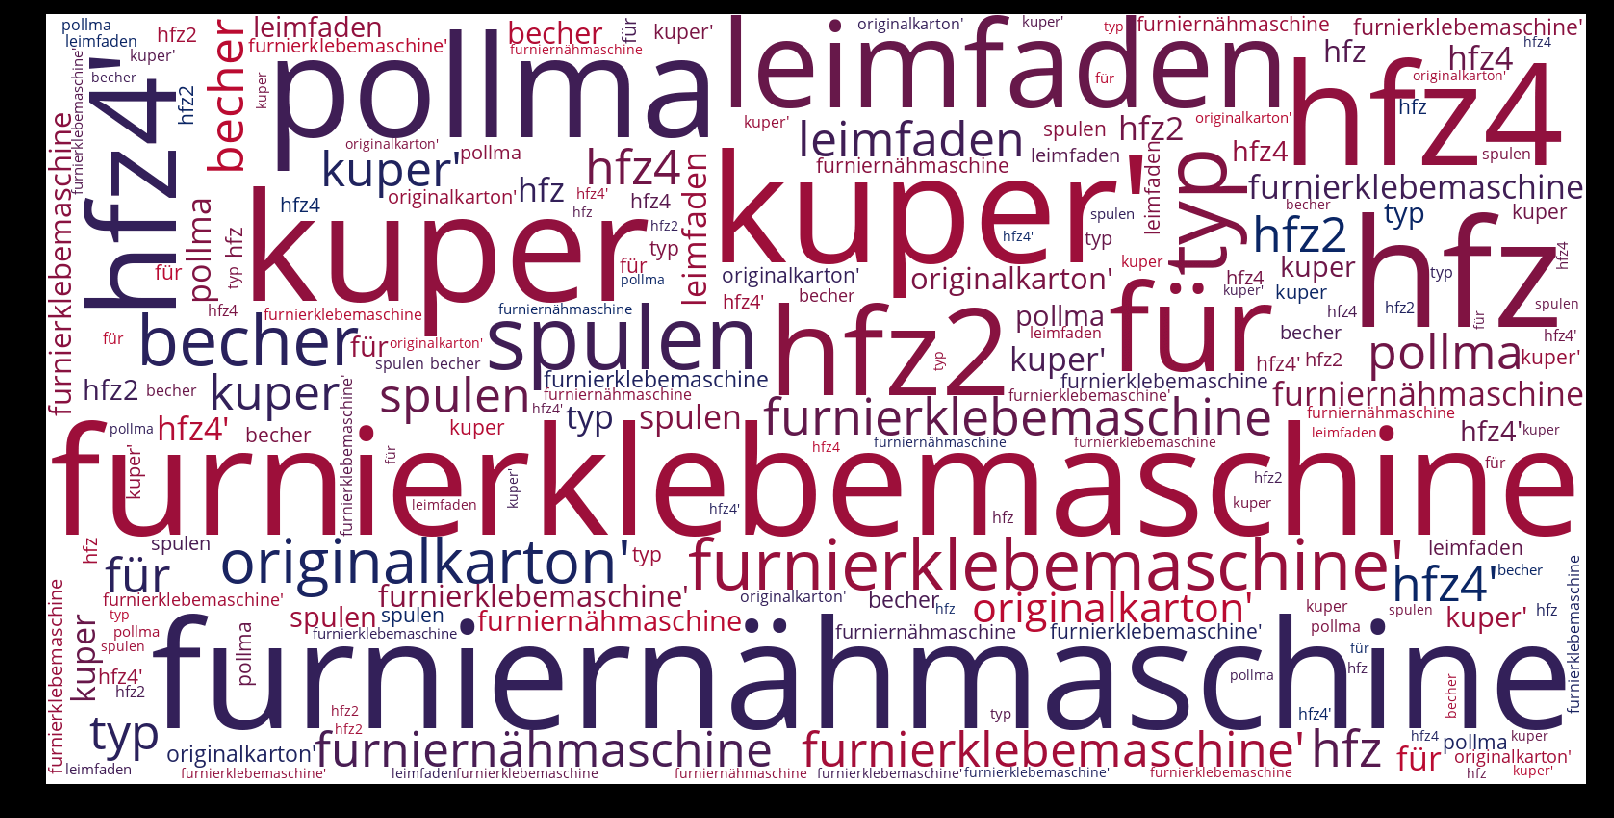 Furnierklebemaschine-wordcloud